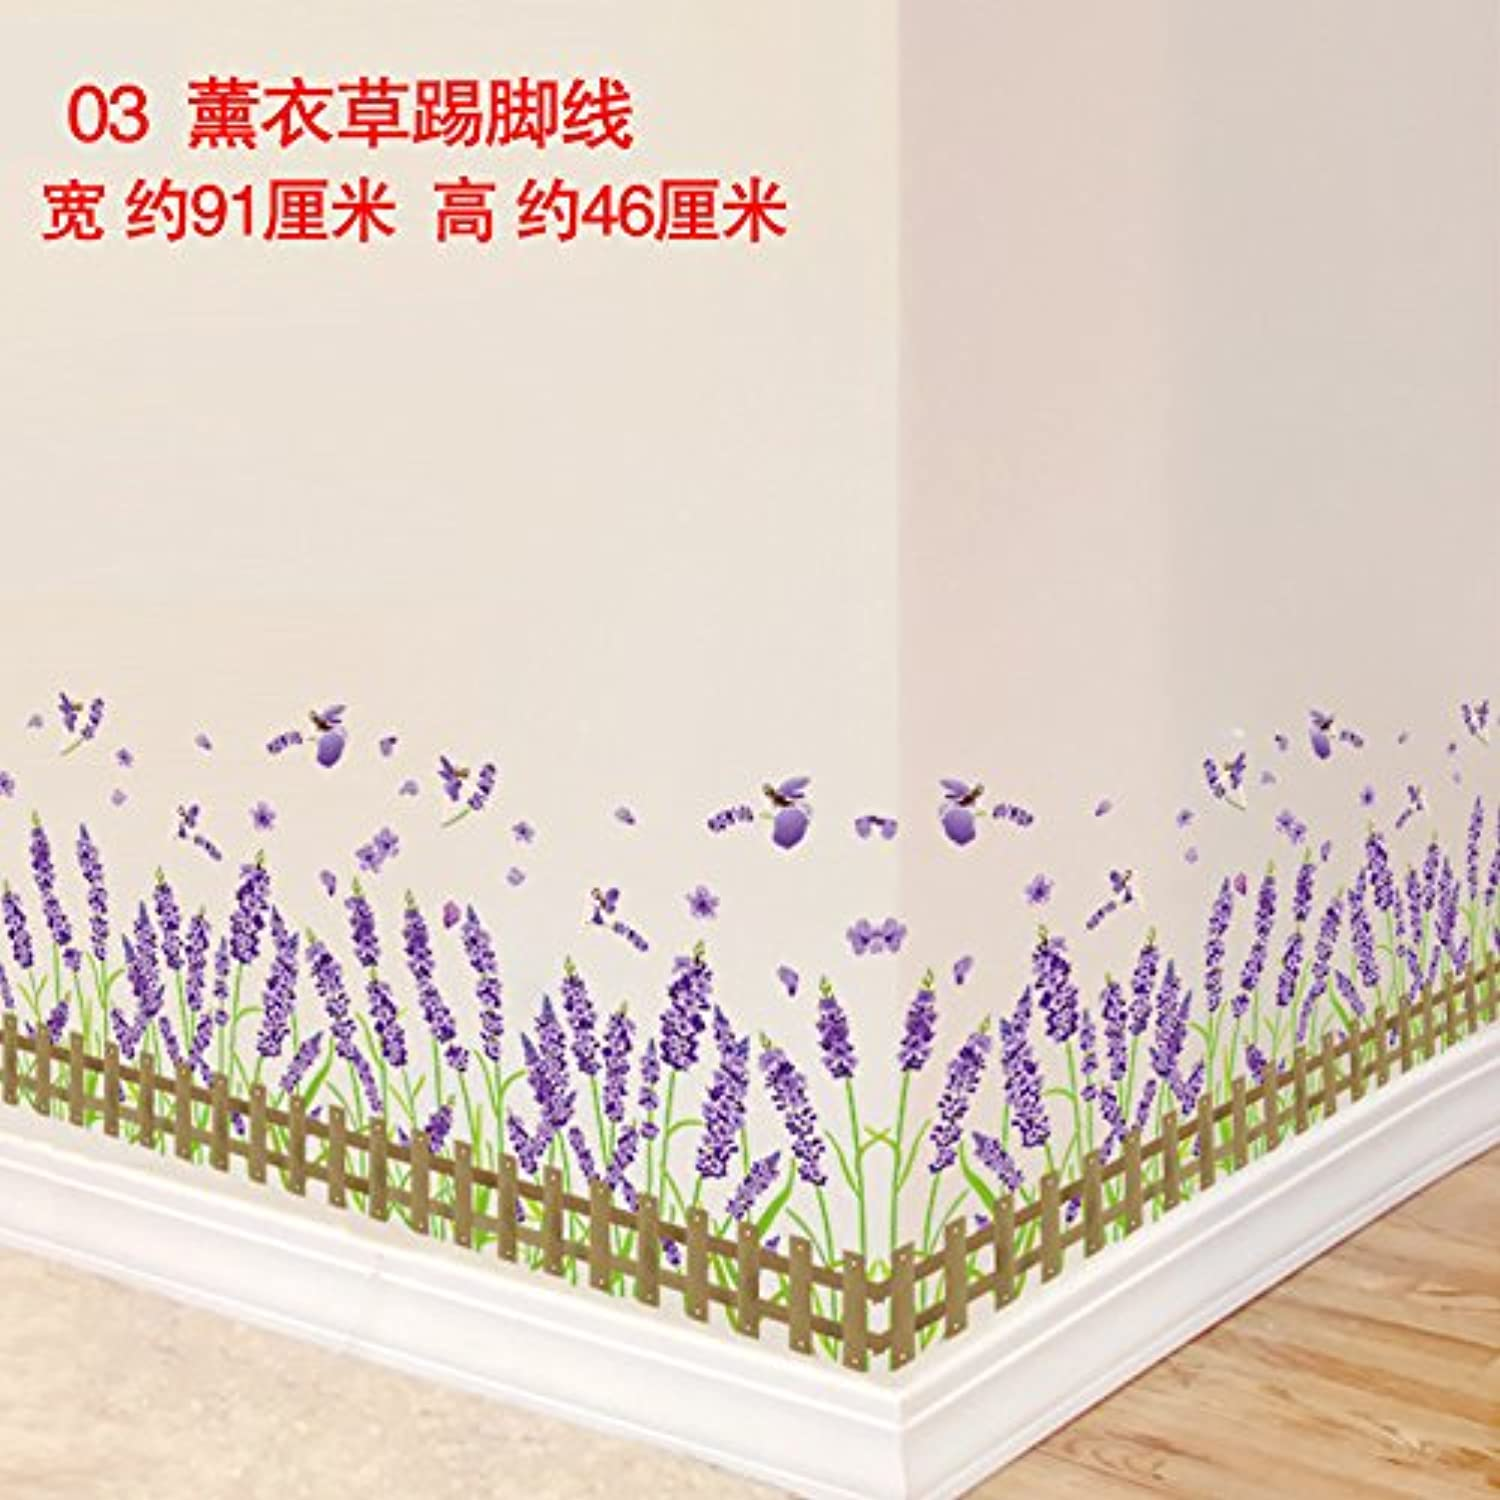 Znzbzt Wall Sticker Art Rooms Living Room Wall Decoration Wallpaper self Adhesive Wall skirting, Lavender